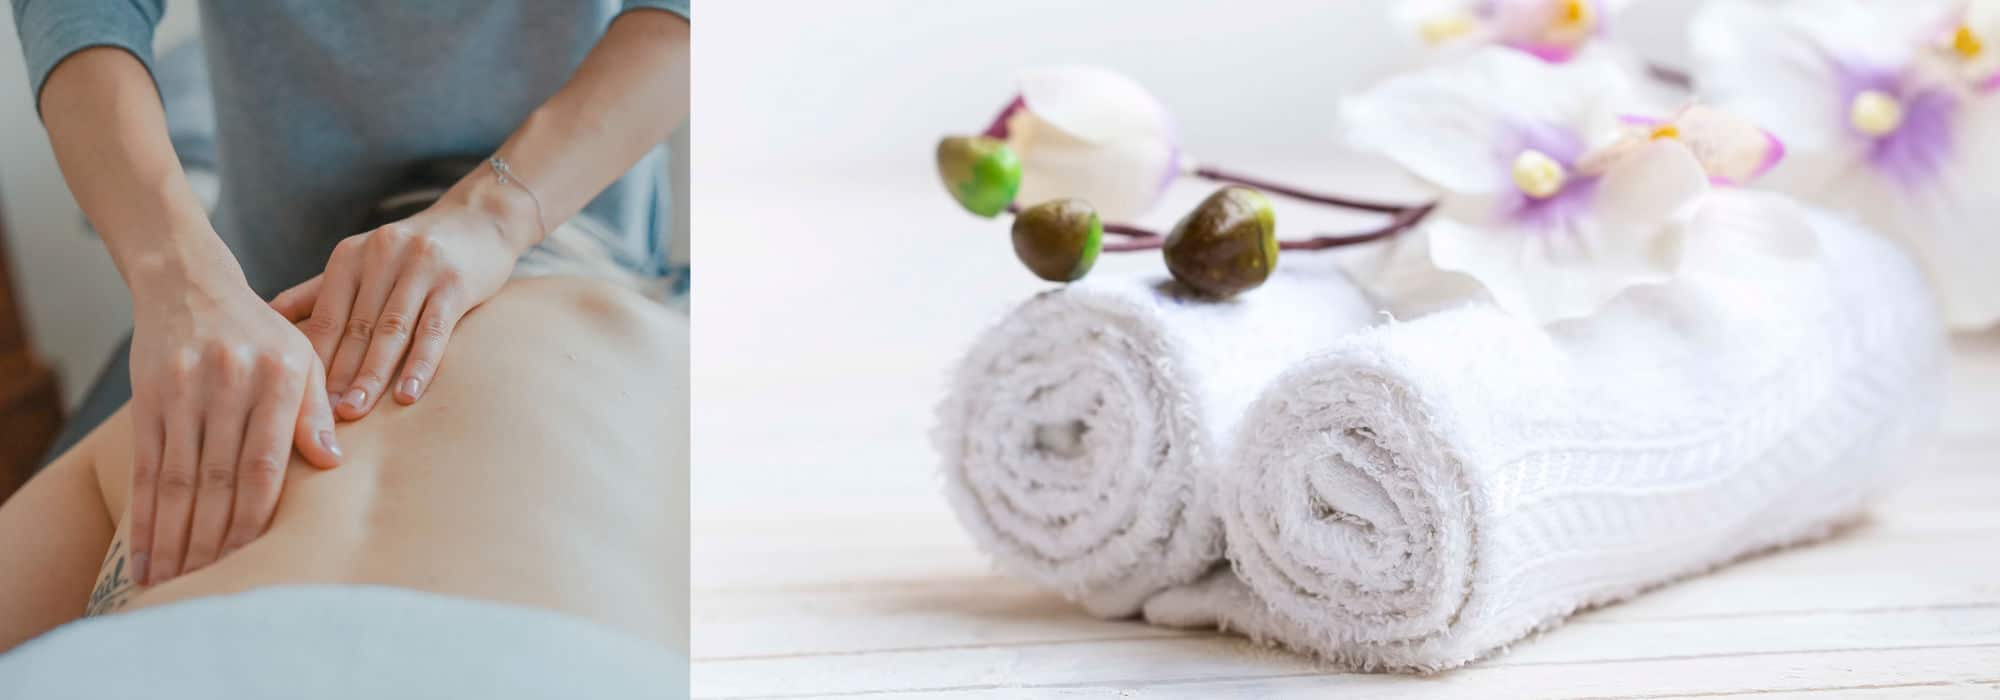 Therapeutic Massage by Solas Essentials